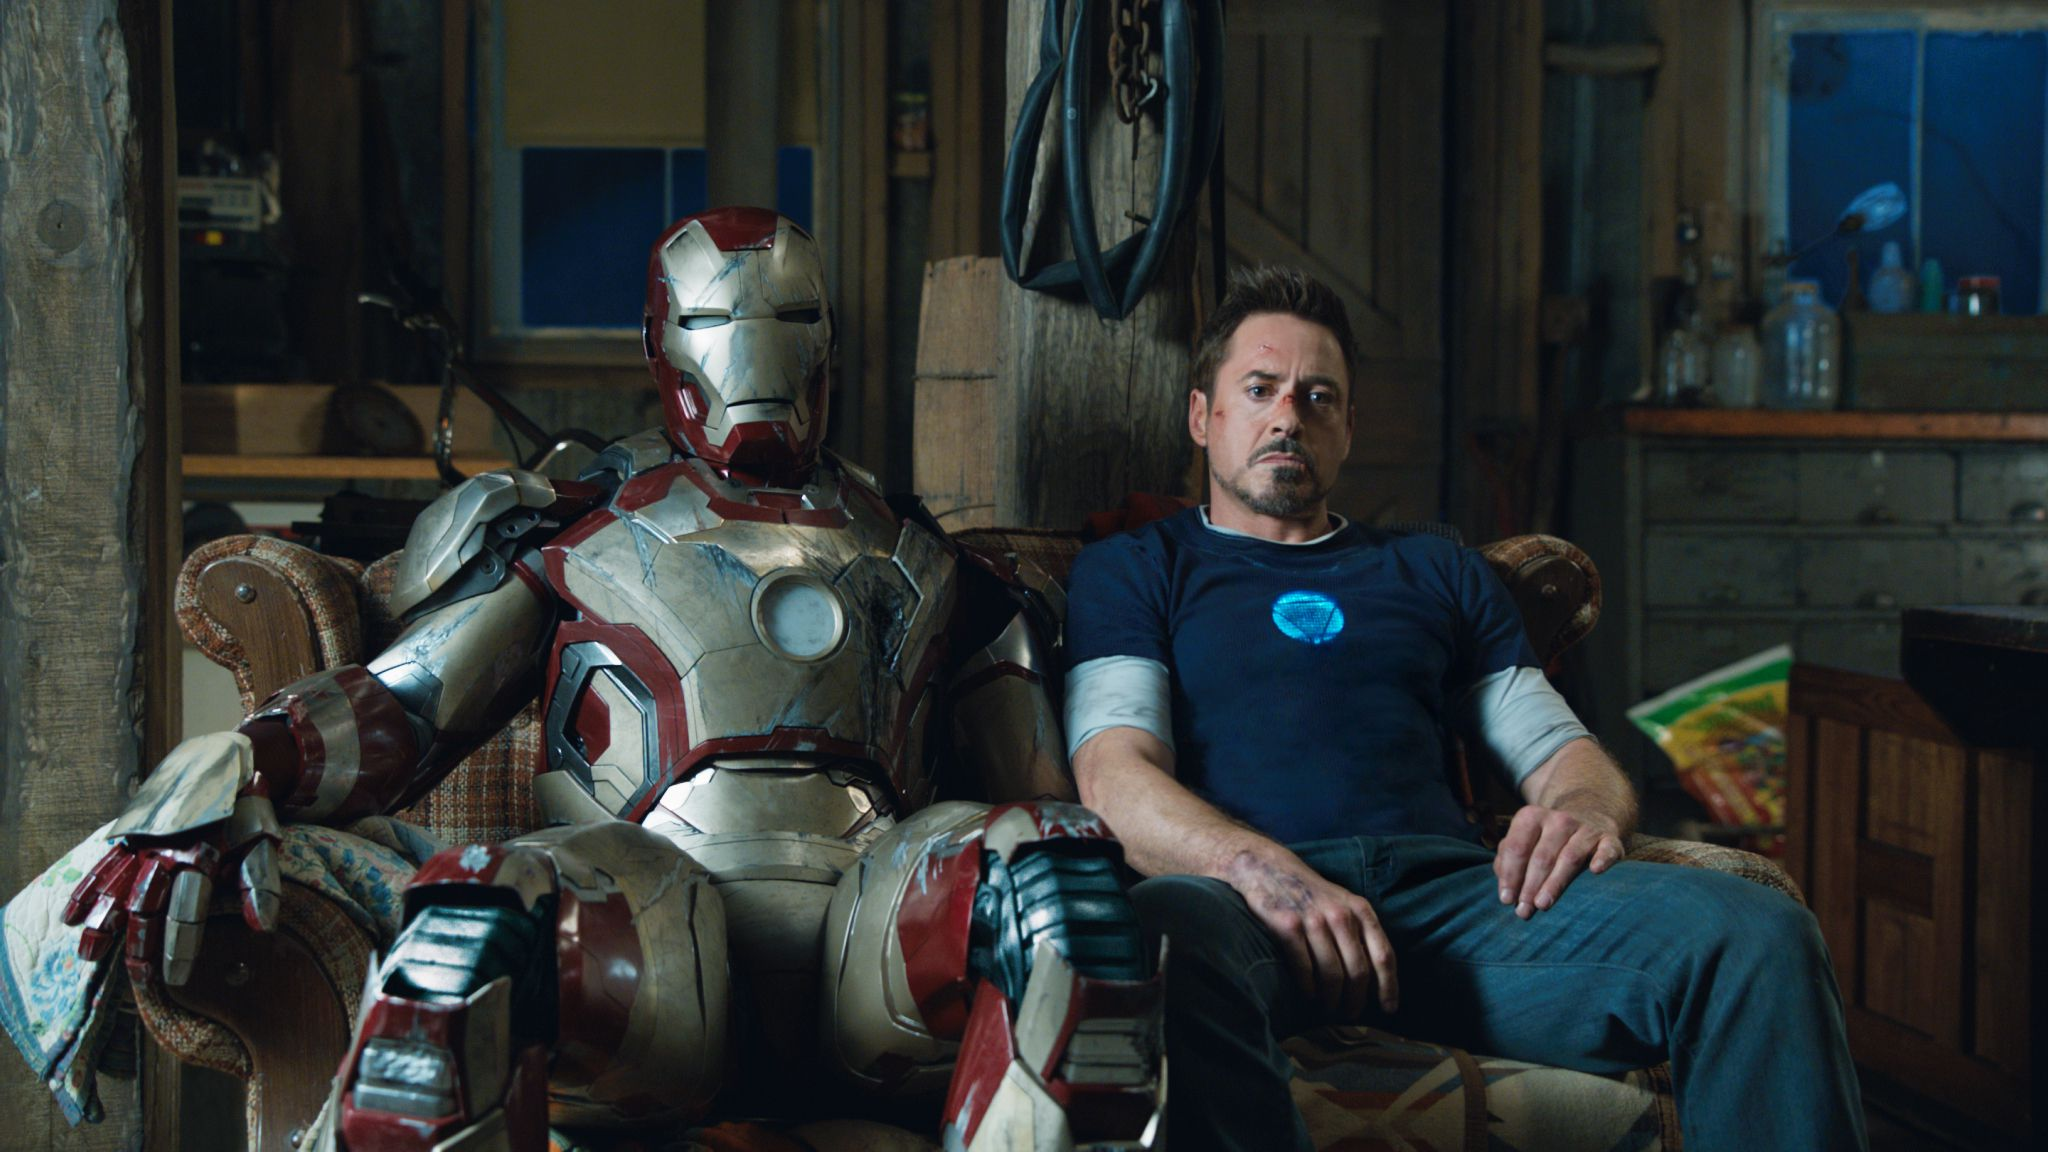 Iron Man 3 (2013) Directed by Shane Black - Image 6